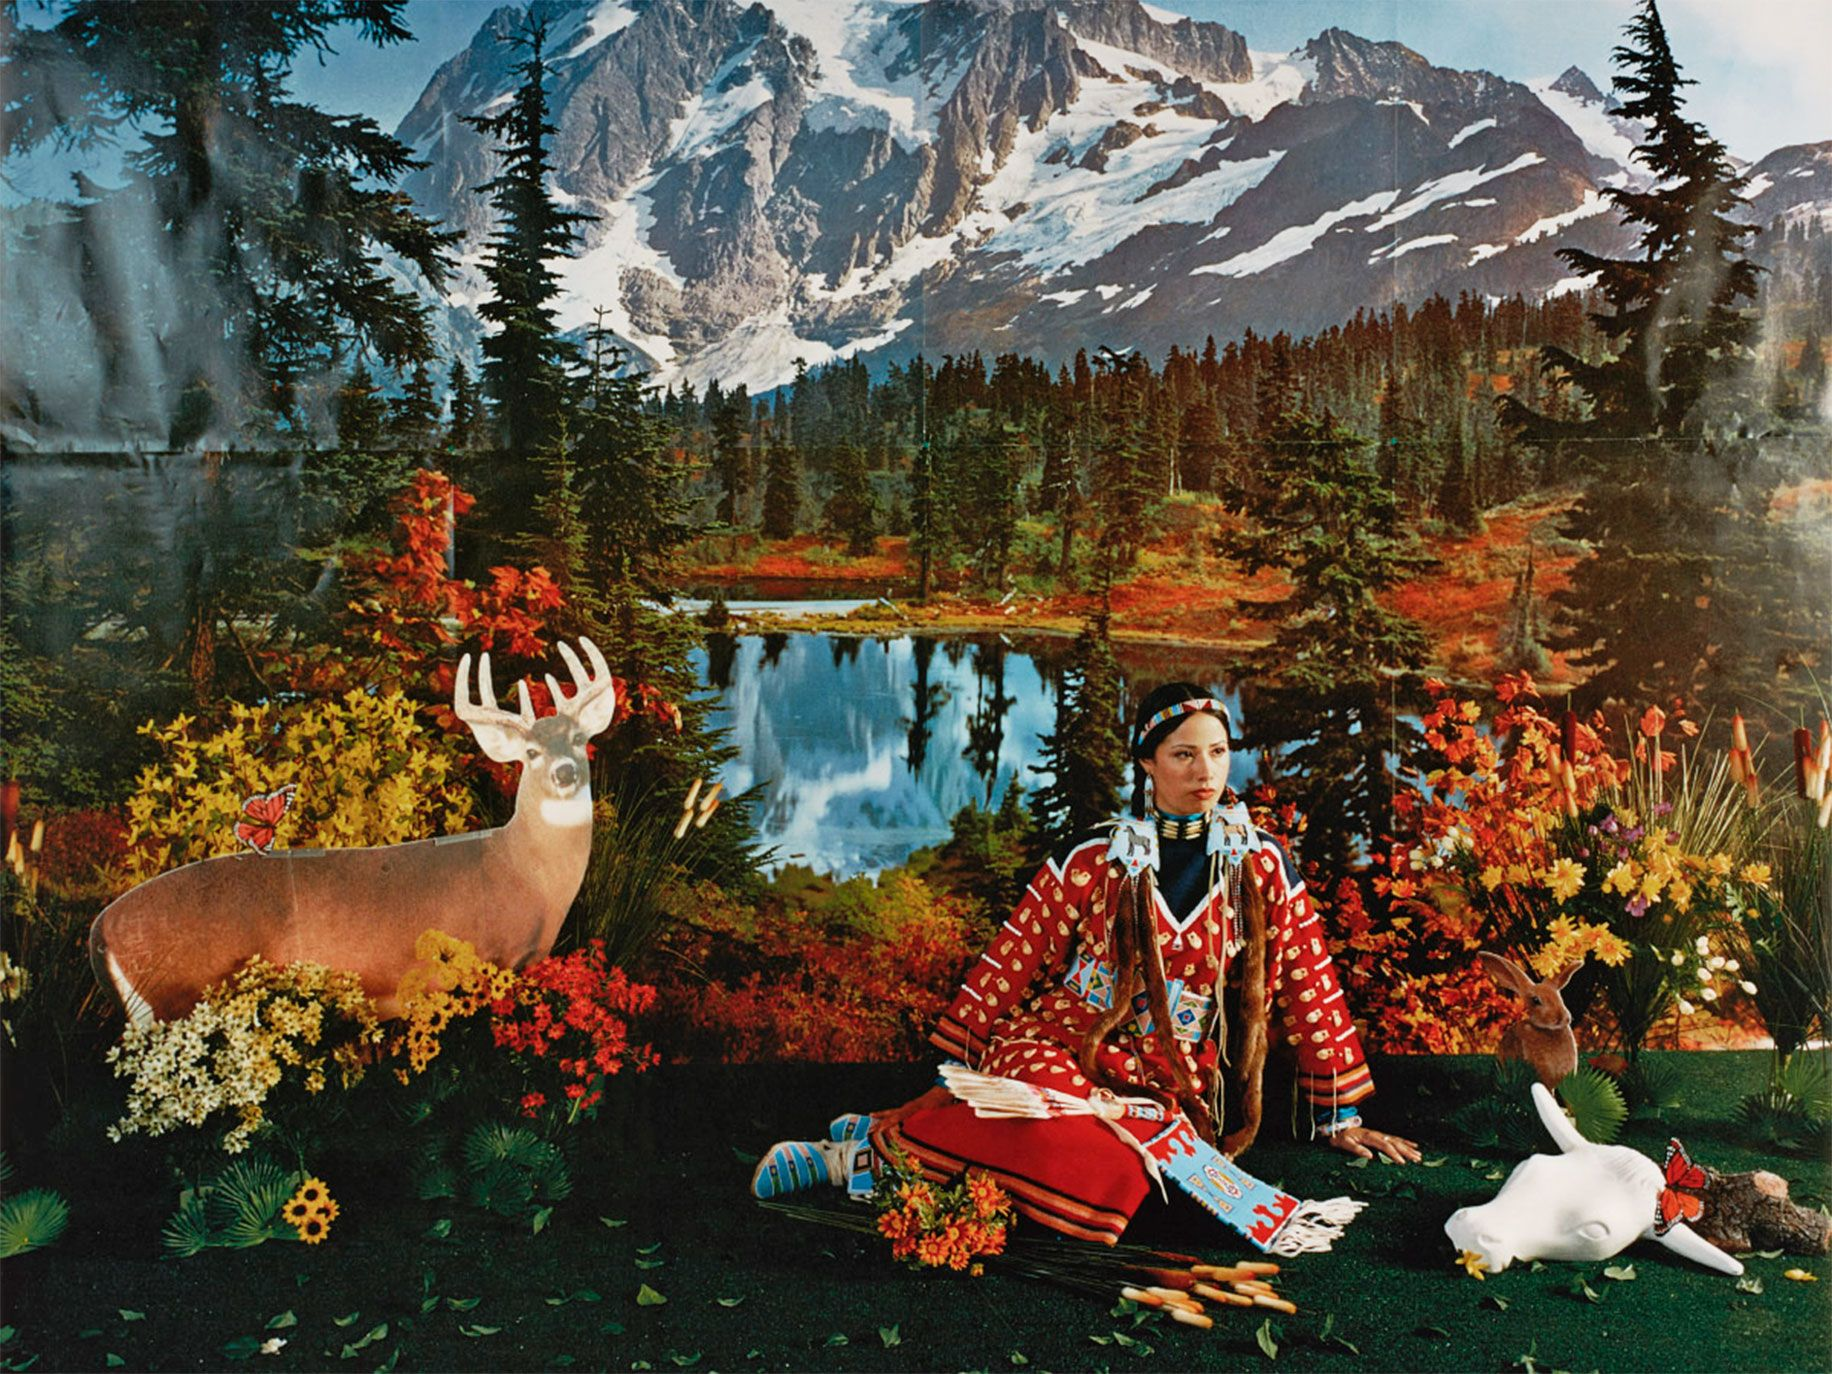 Wendy Red Star, Indian Summer, 2006, is one of the photos on exhibit at the Portland Art Museum's Toughened to Wind and Sun.